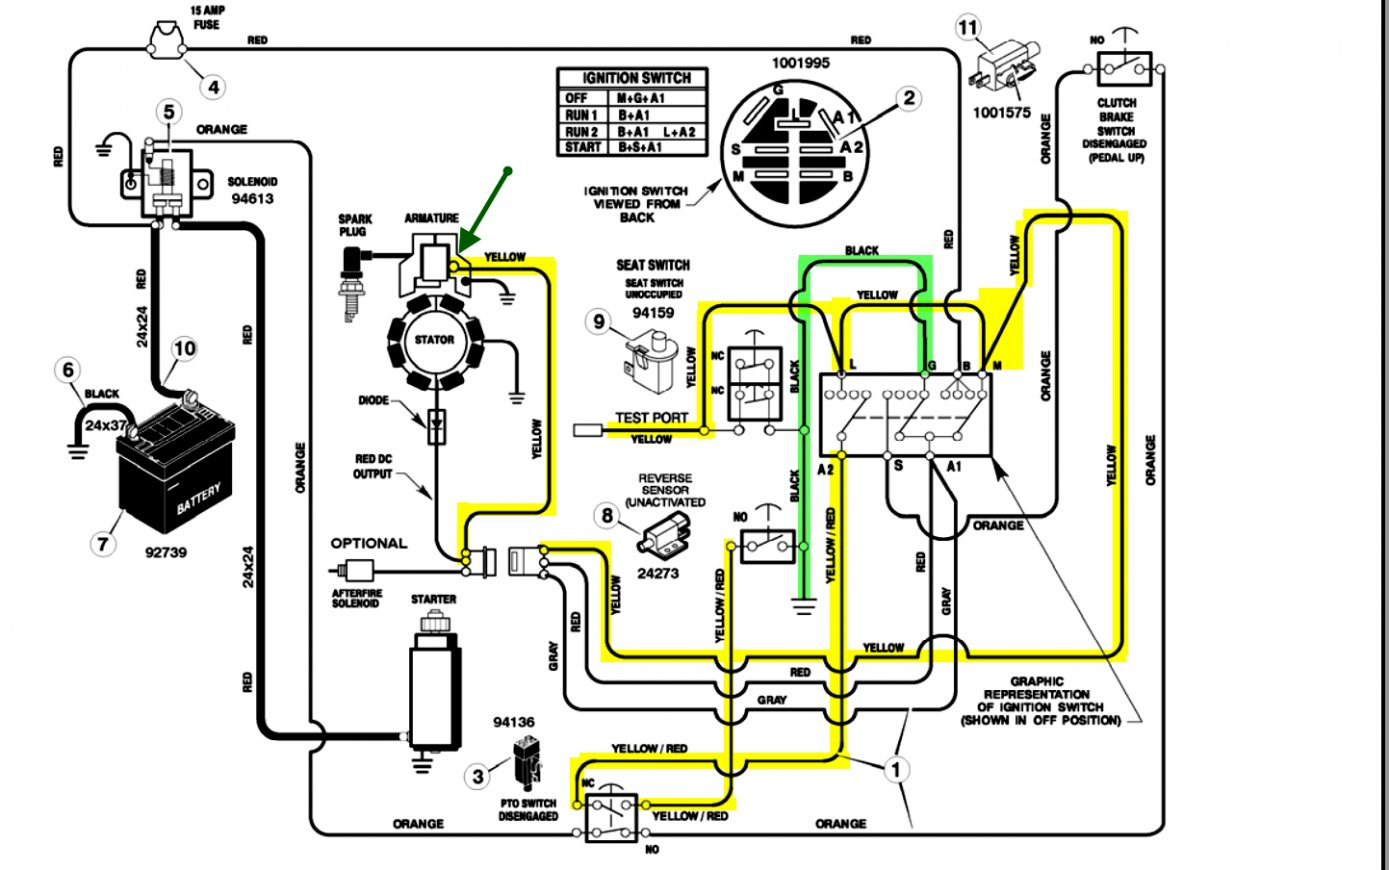 Briggs Amp Stratton Kill Switch Wiring Diagram - Detailed Wiring Diagram - Briggs And Stratton Wiring Diagram 16 Hp